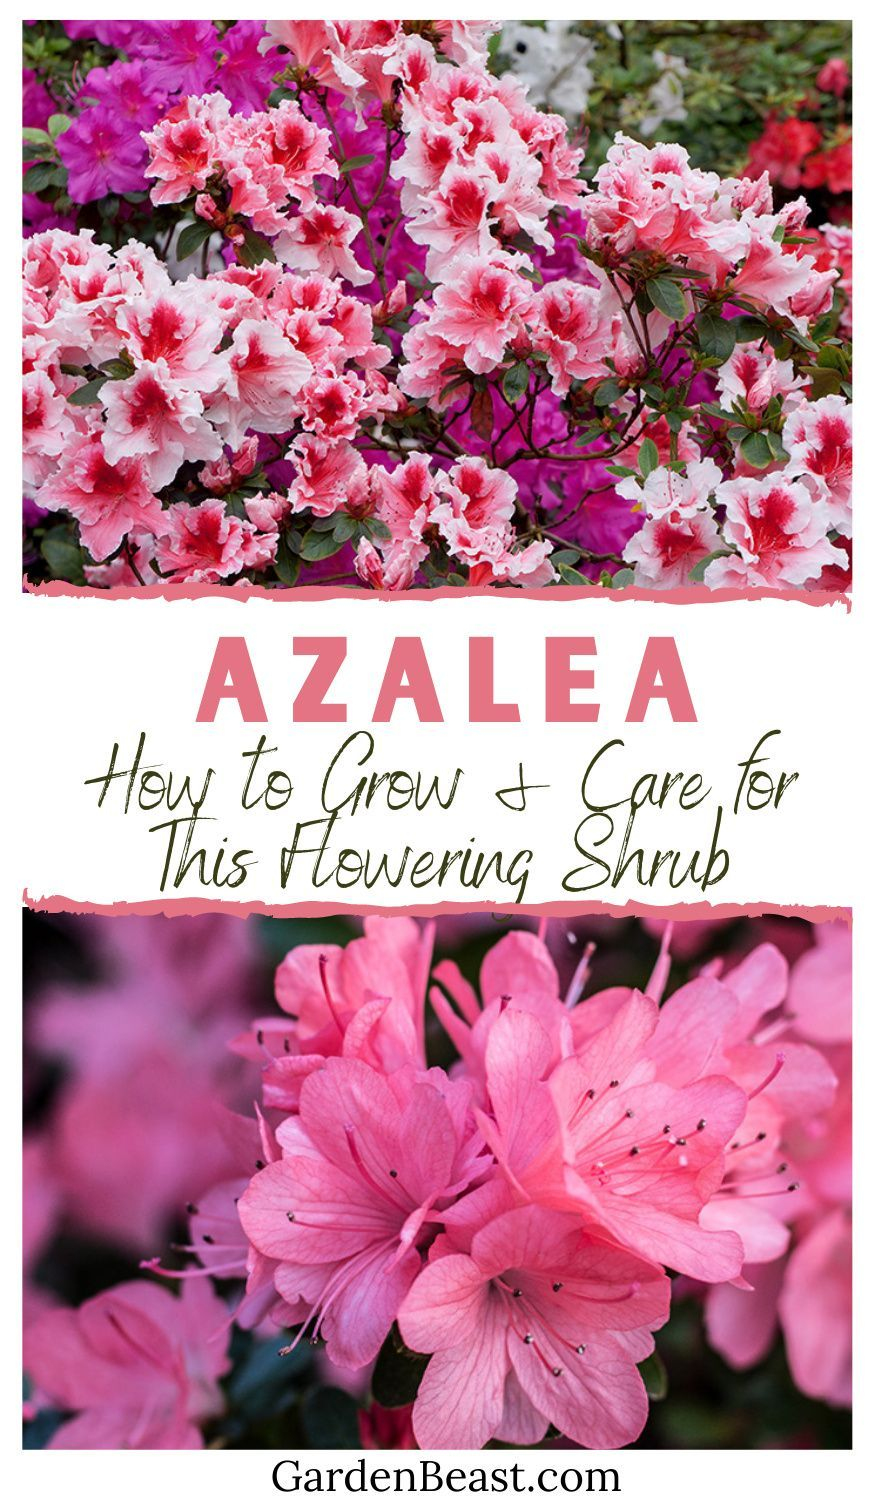 Azalea Guide How To Grow Care For This Flowering Shrub In 2020 Azalea Flower Flowering Shrubs Azaleas Landscaping